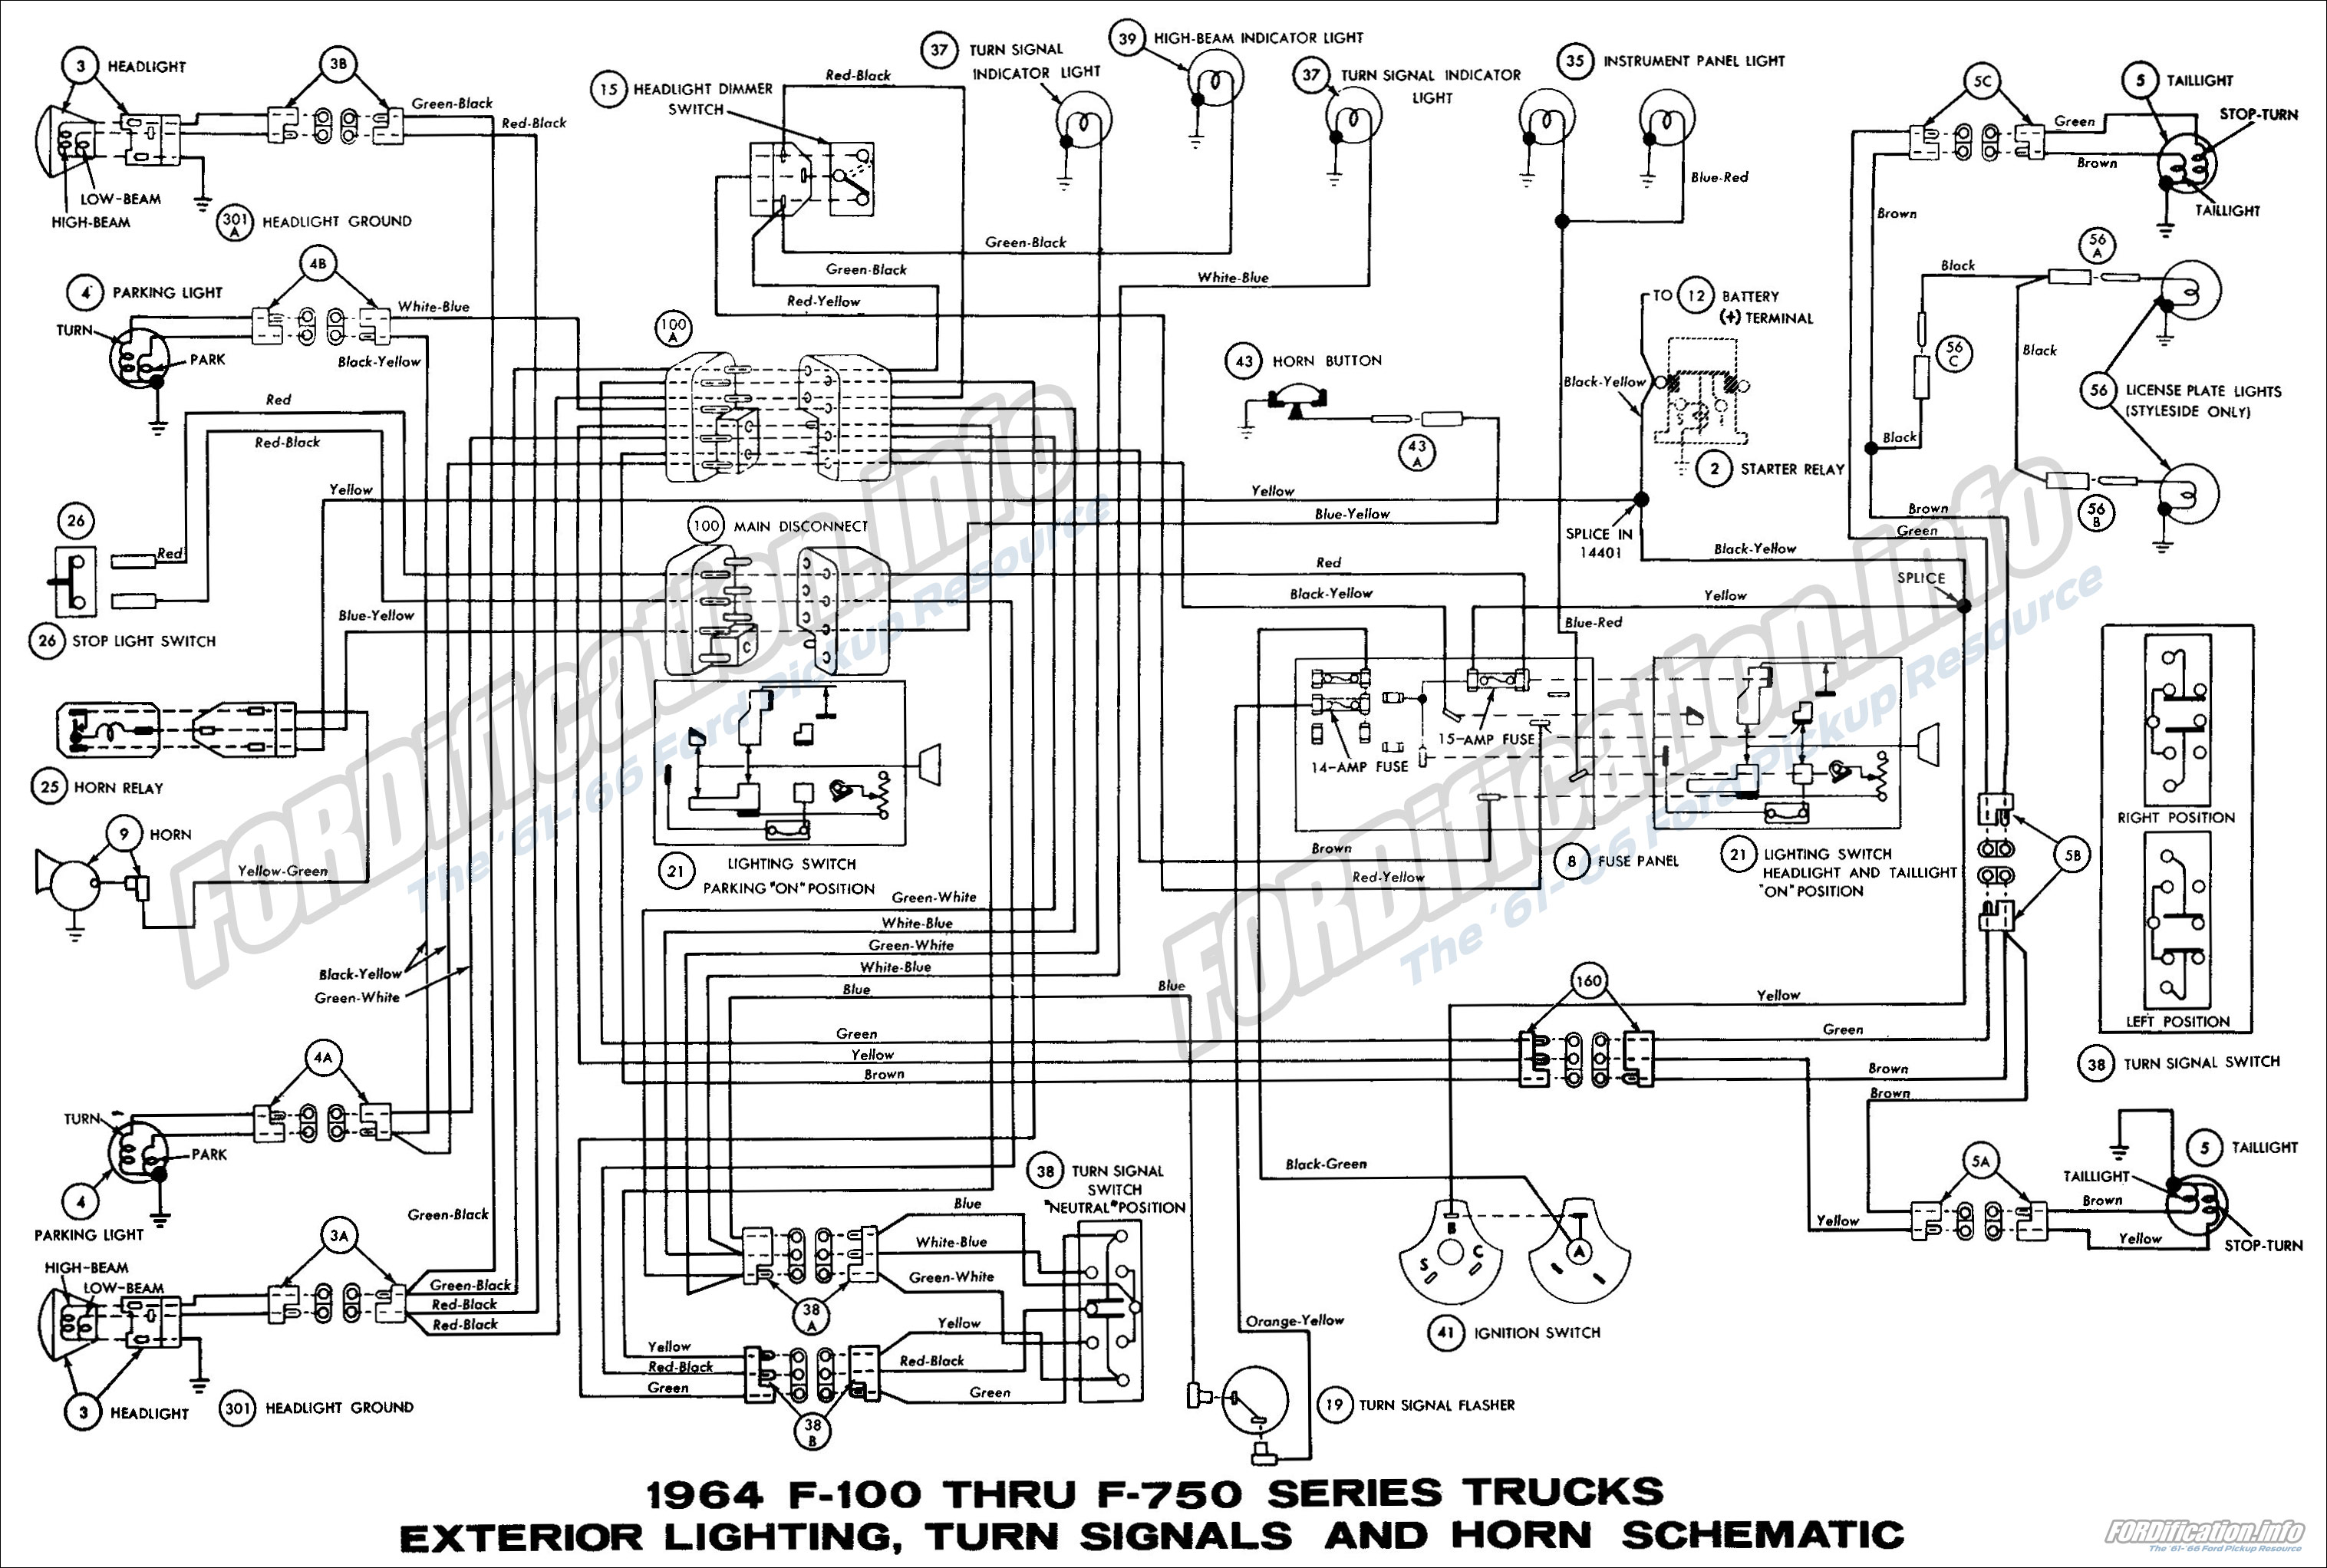 1964 ford truck wiring diagrams fordification info the 61 66 rh fordification info 1964 ford f100 wiring diagram 1964 ford f100 wiring diagram